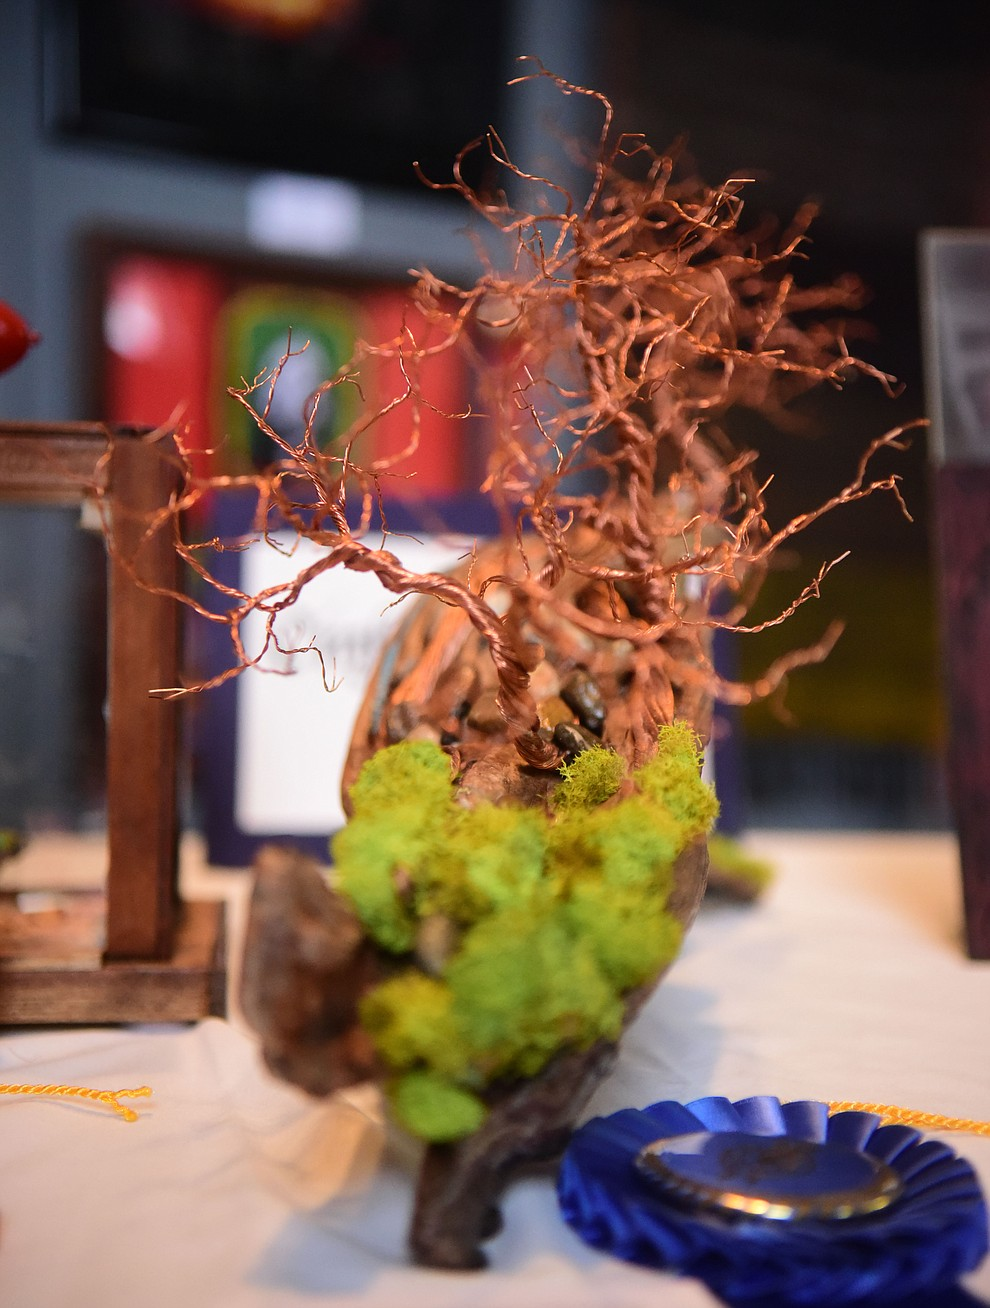 Three Trees in the mixed media category by Fabio Alldoli at the Prescott VA Veteran's Creative Arts Festival Wednesday, Feb. 13, 2019. 128 pieces are on display at the 25th annual show being held in Building 15, theatre. (Les Stukenberg/Courier).